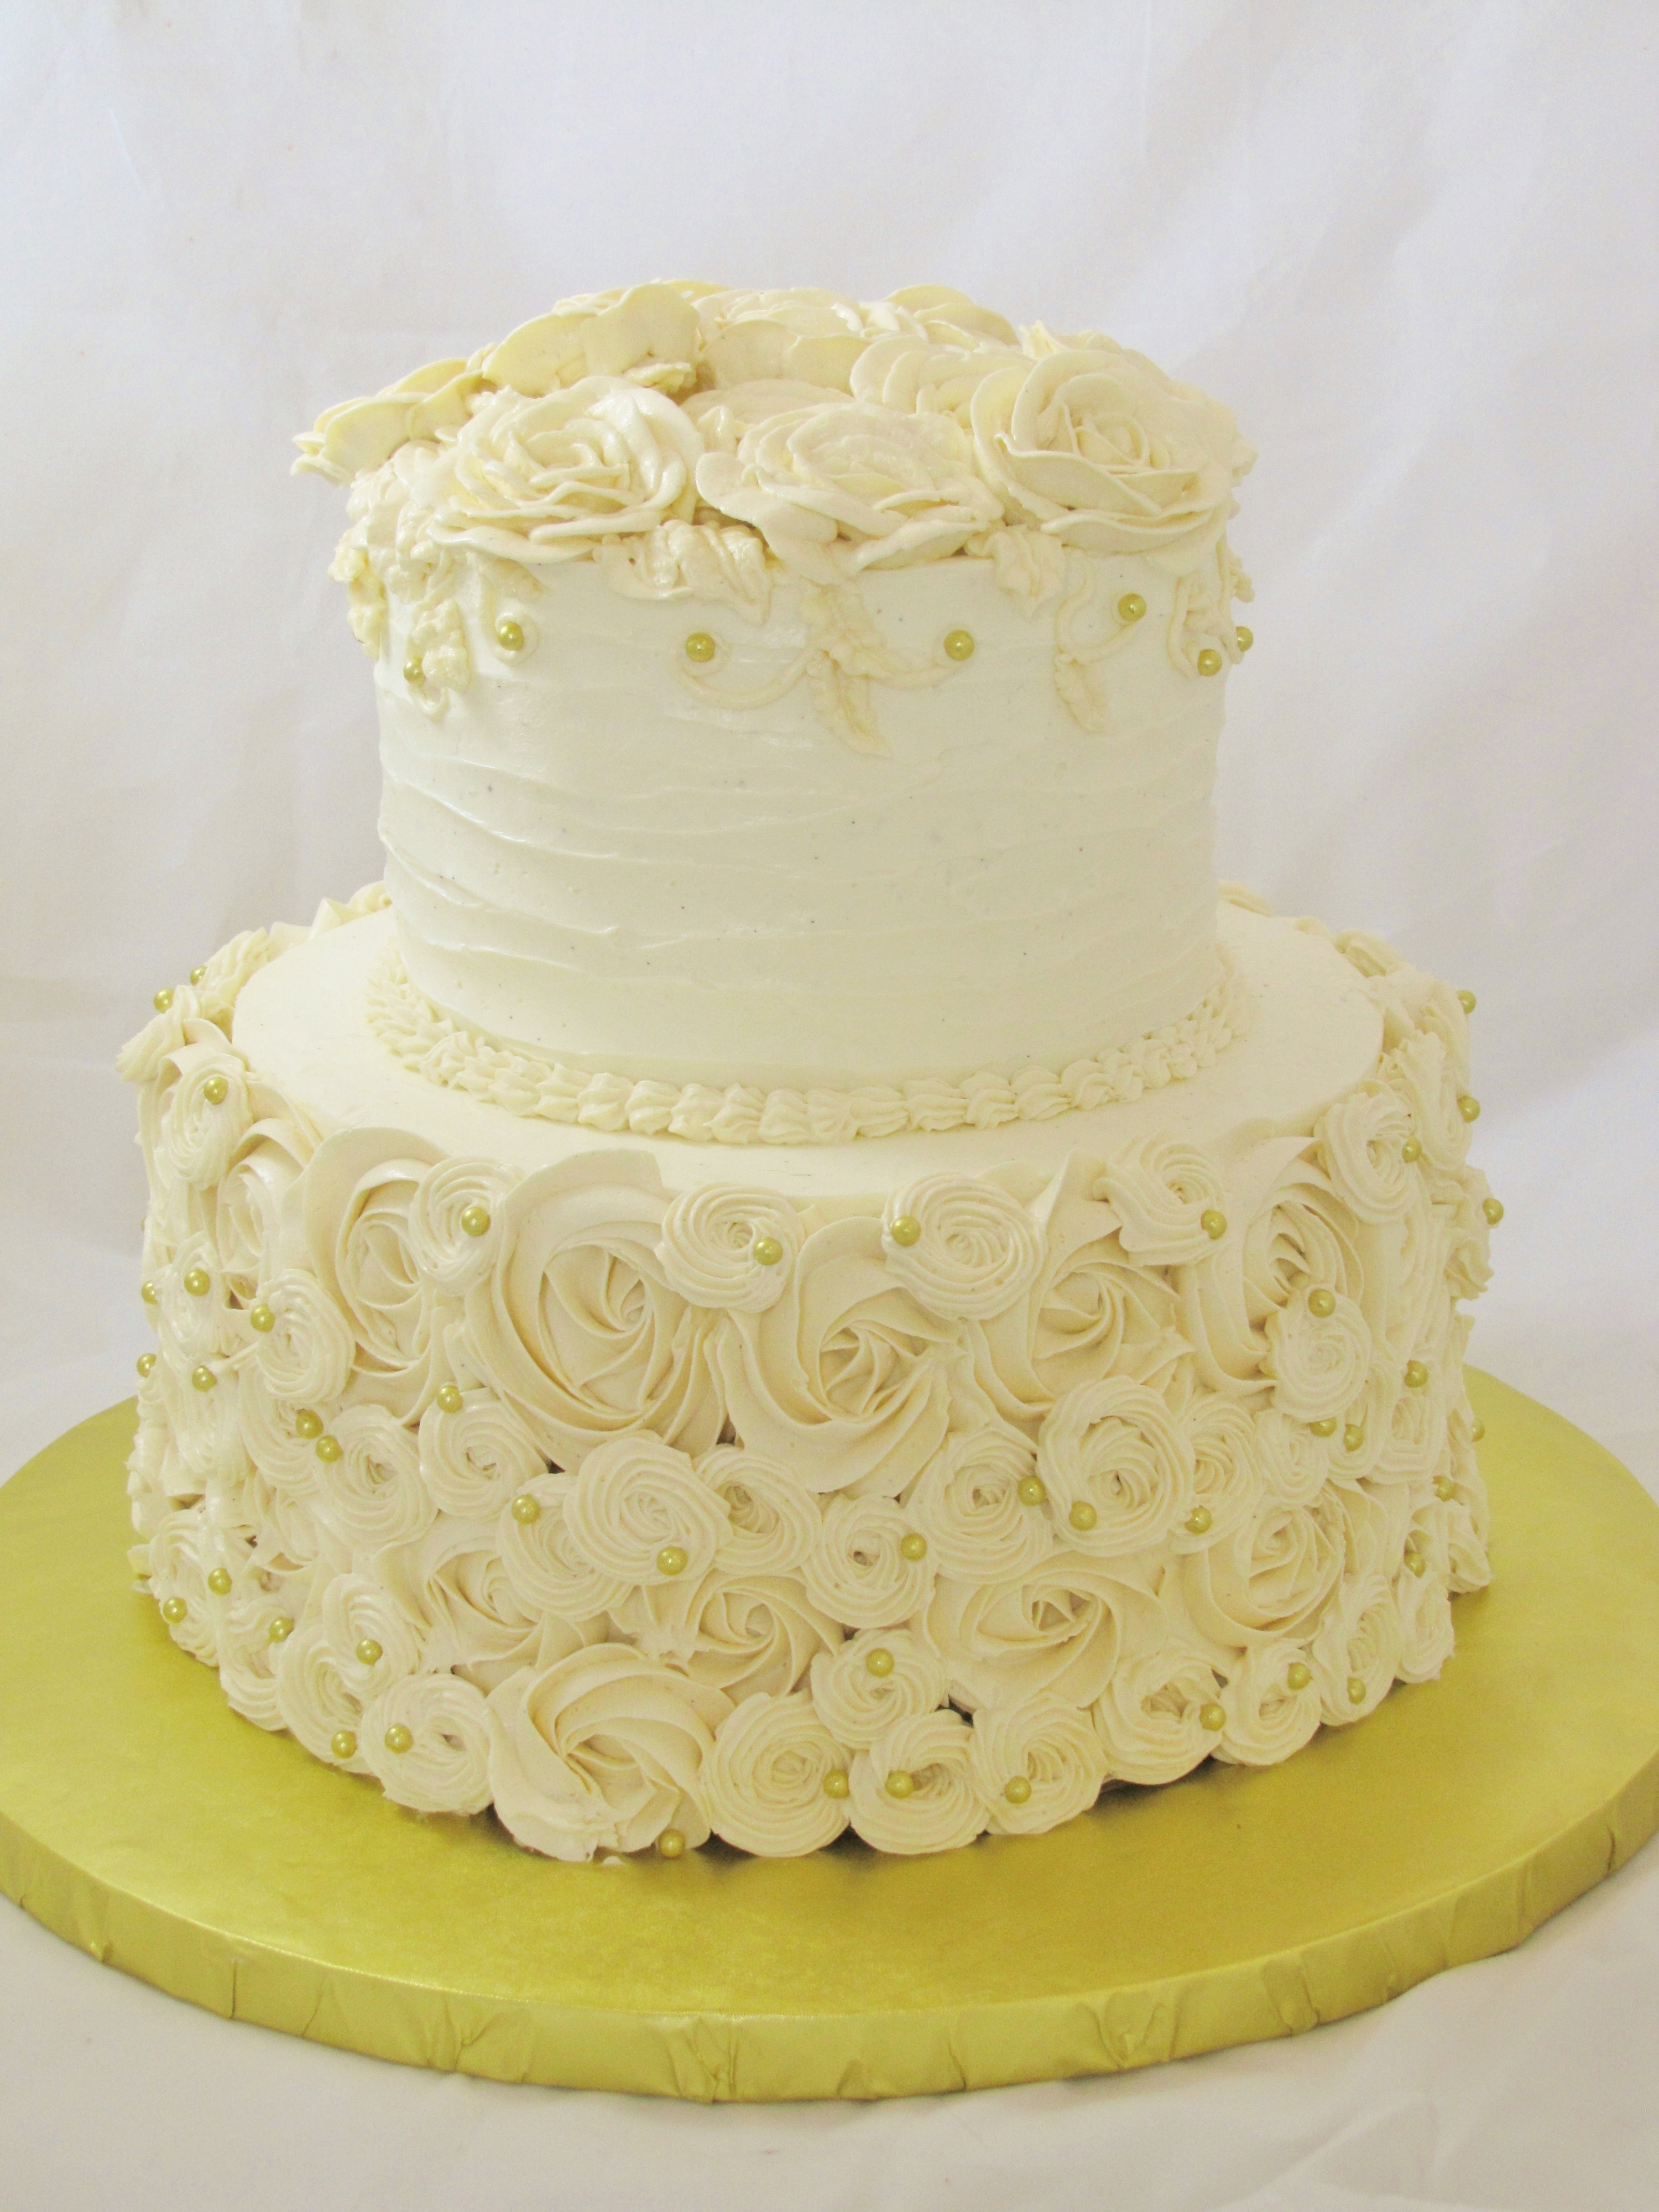 Images Of Round Wedding Cake : Round Piped Buttercream Wedding Cake - CakeCentral.com